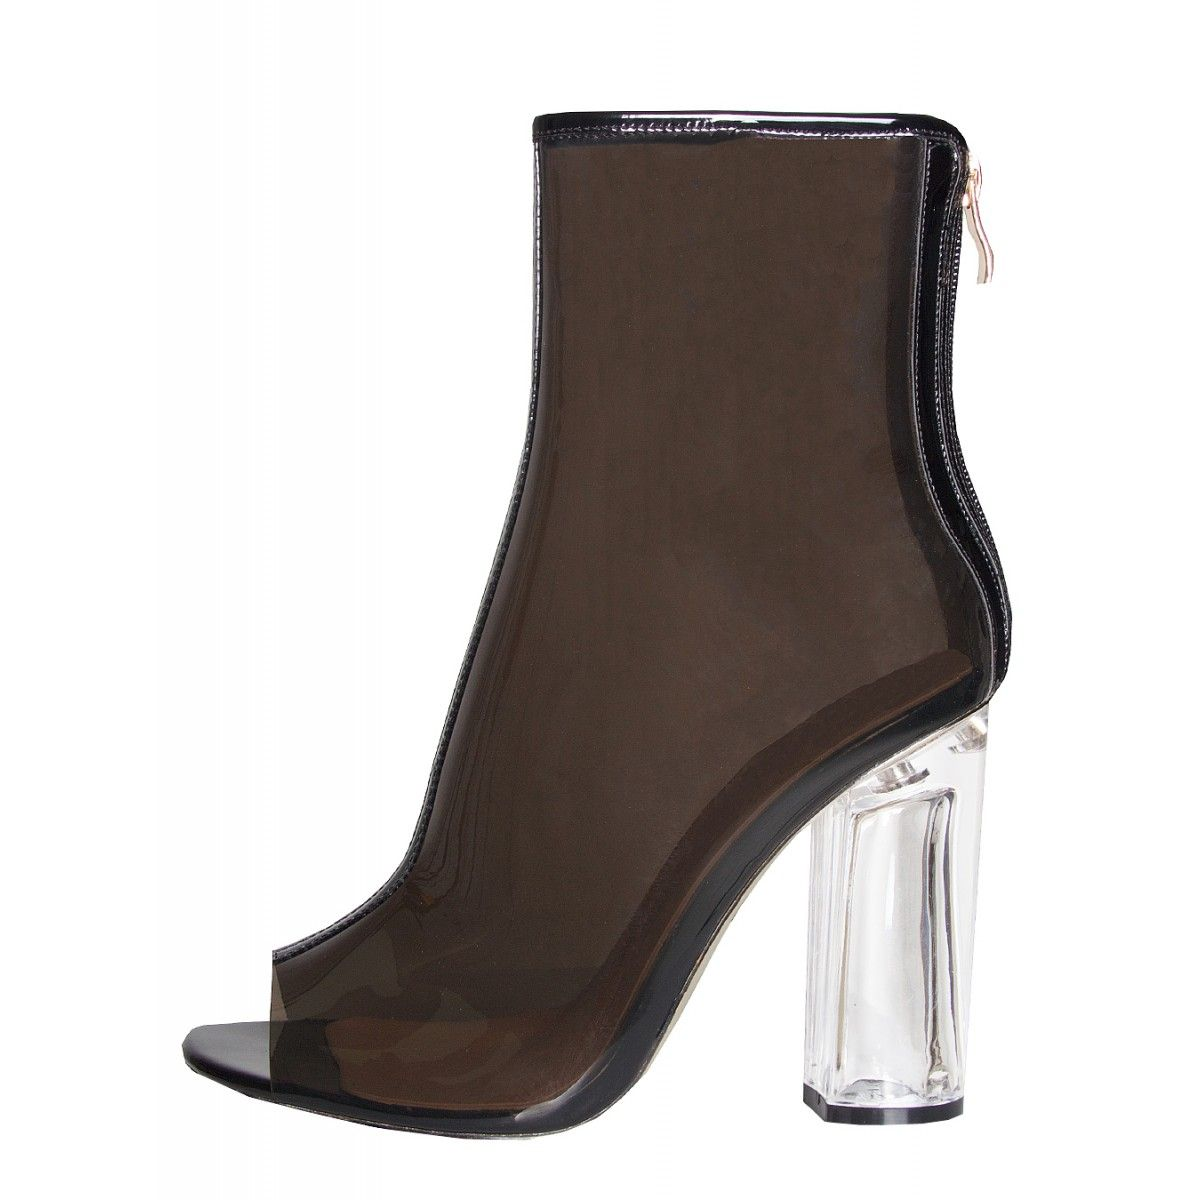 Melissa Black Peep Toe Perspex Heel Ankle Boots : Simmi Shoes - Love Your Shoes!